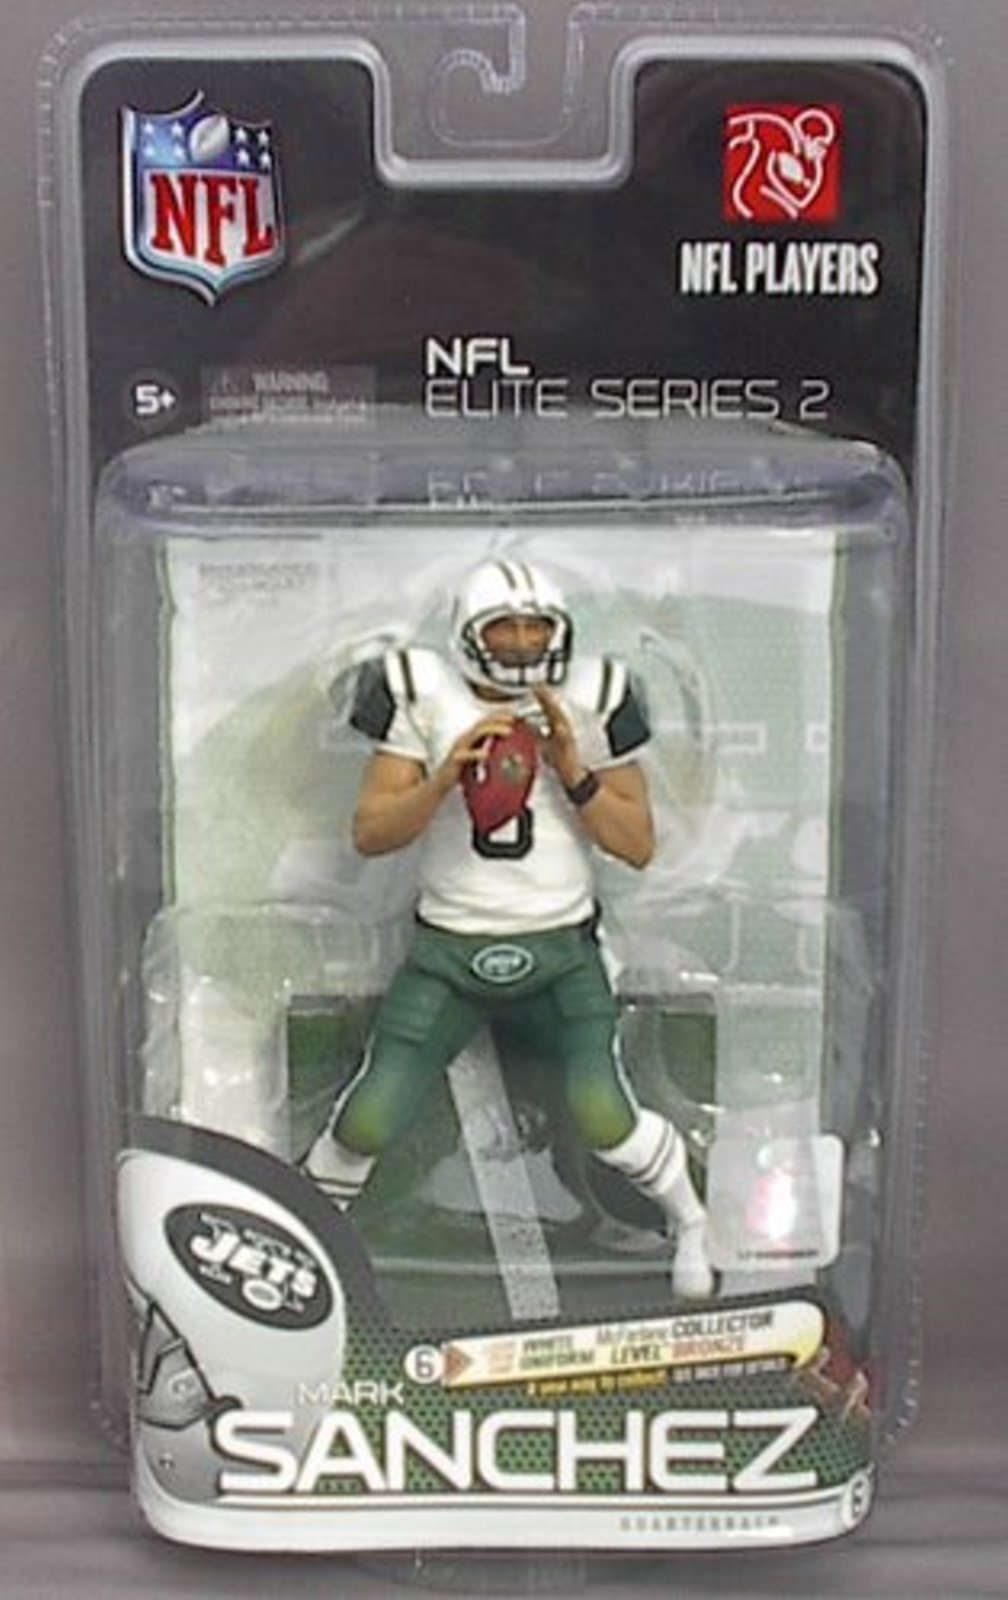 Mark Sanchez NFL Elite Series 2 McFarlane figure New York Jets